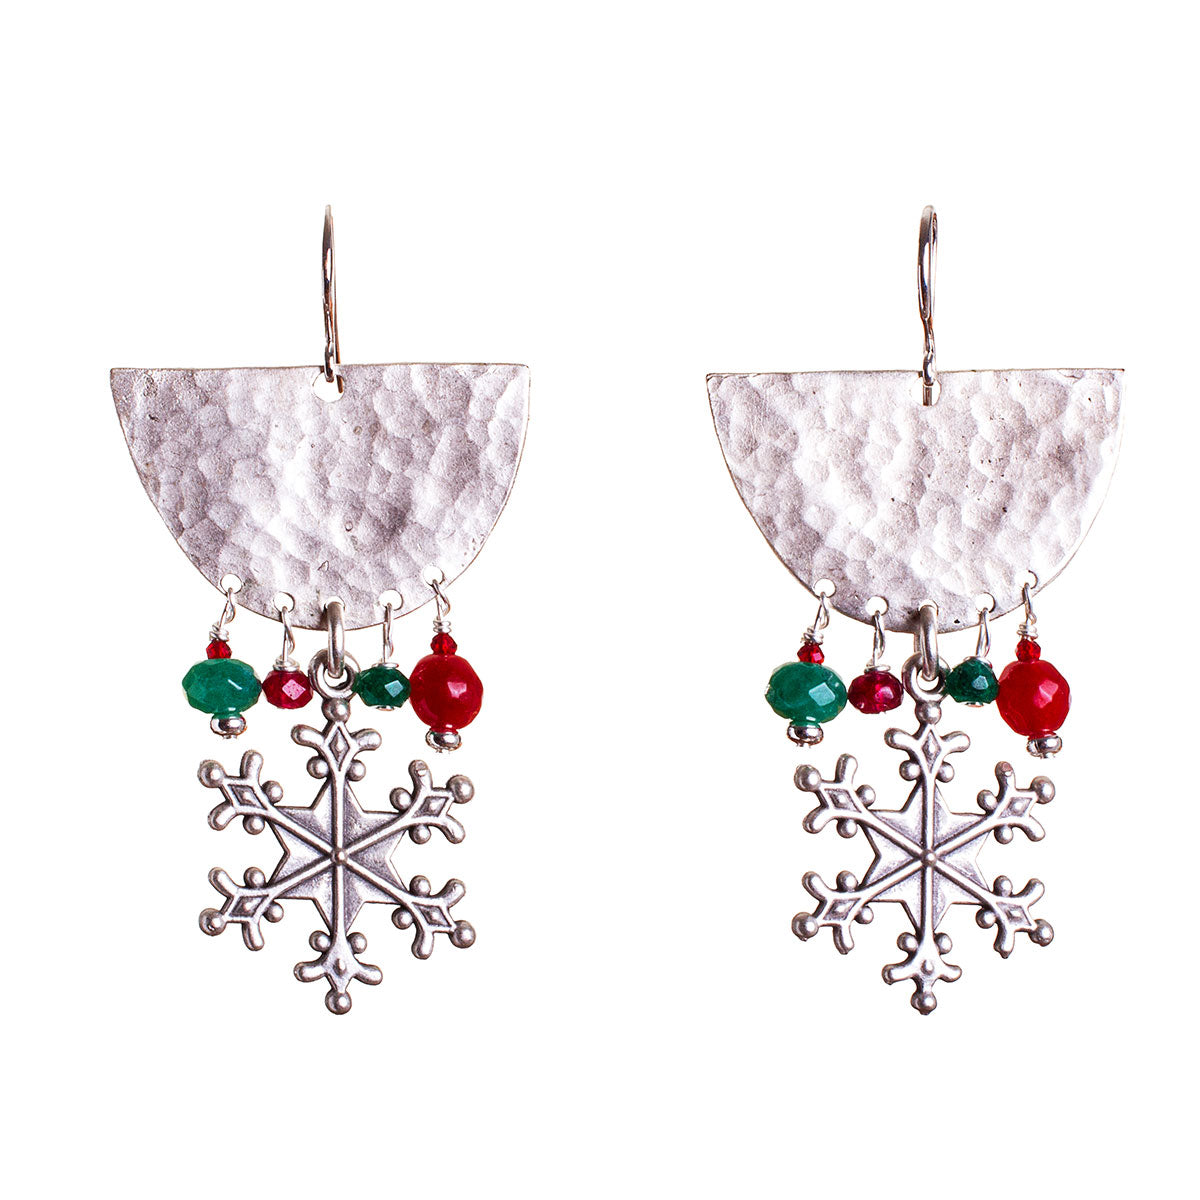 N°685 Where I grew up, Santa is a Woman Statement Earrings